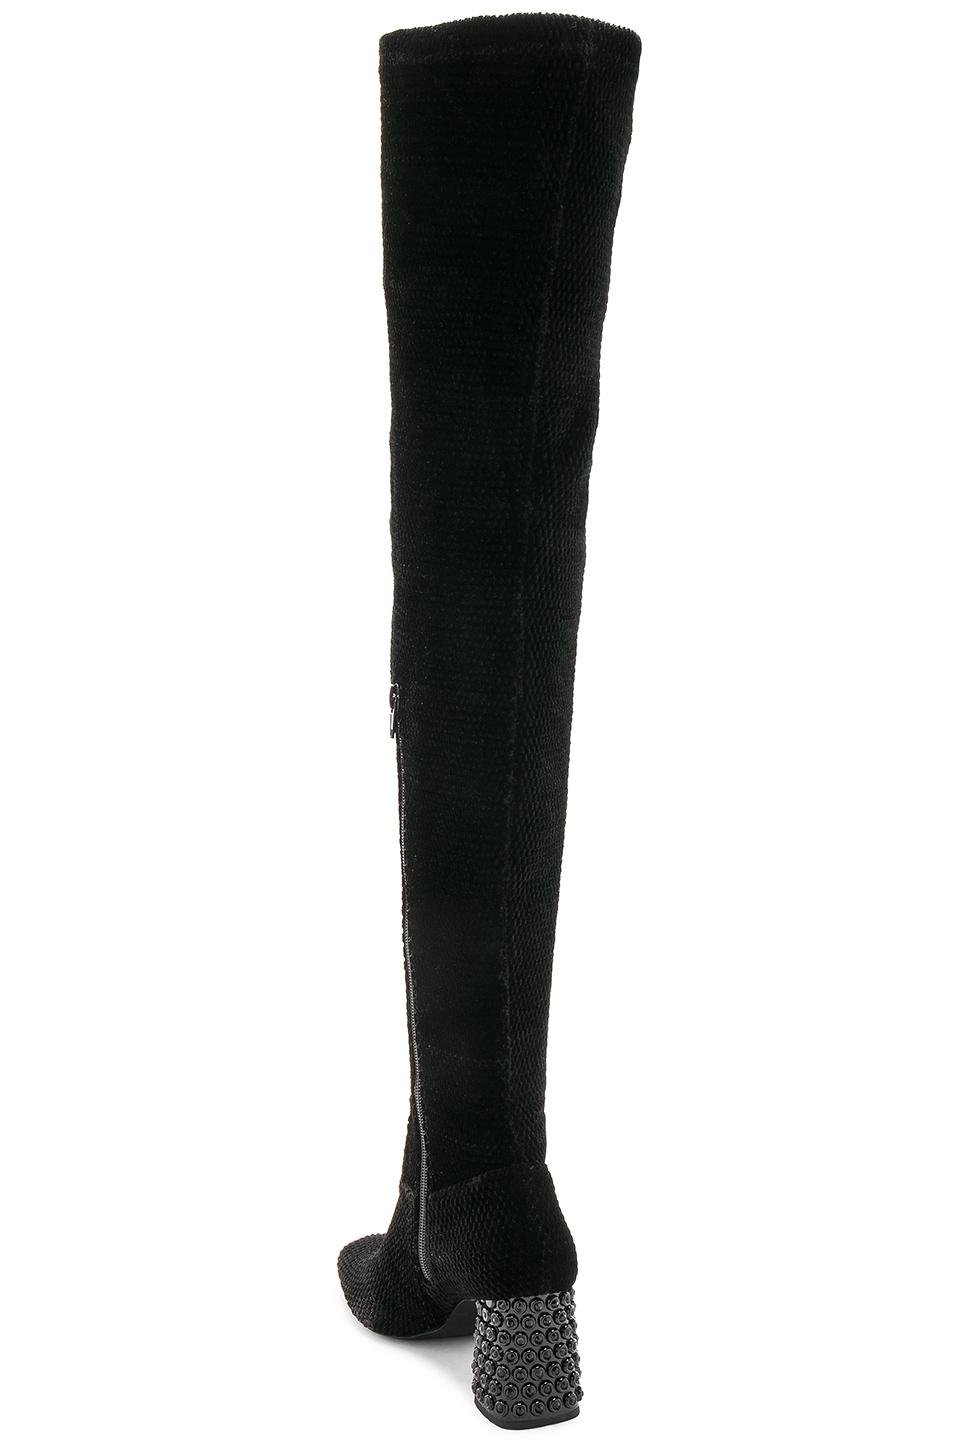 Jeffrey Campbell Velvet Cienega Boot in Black